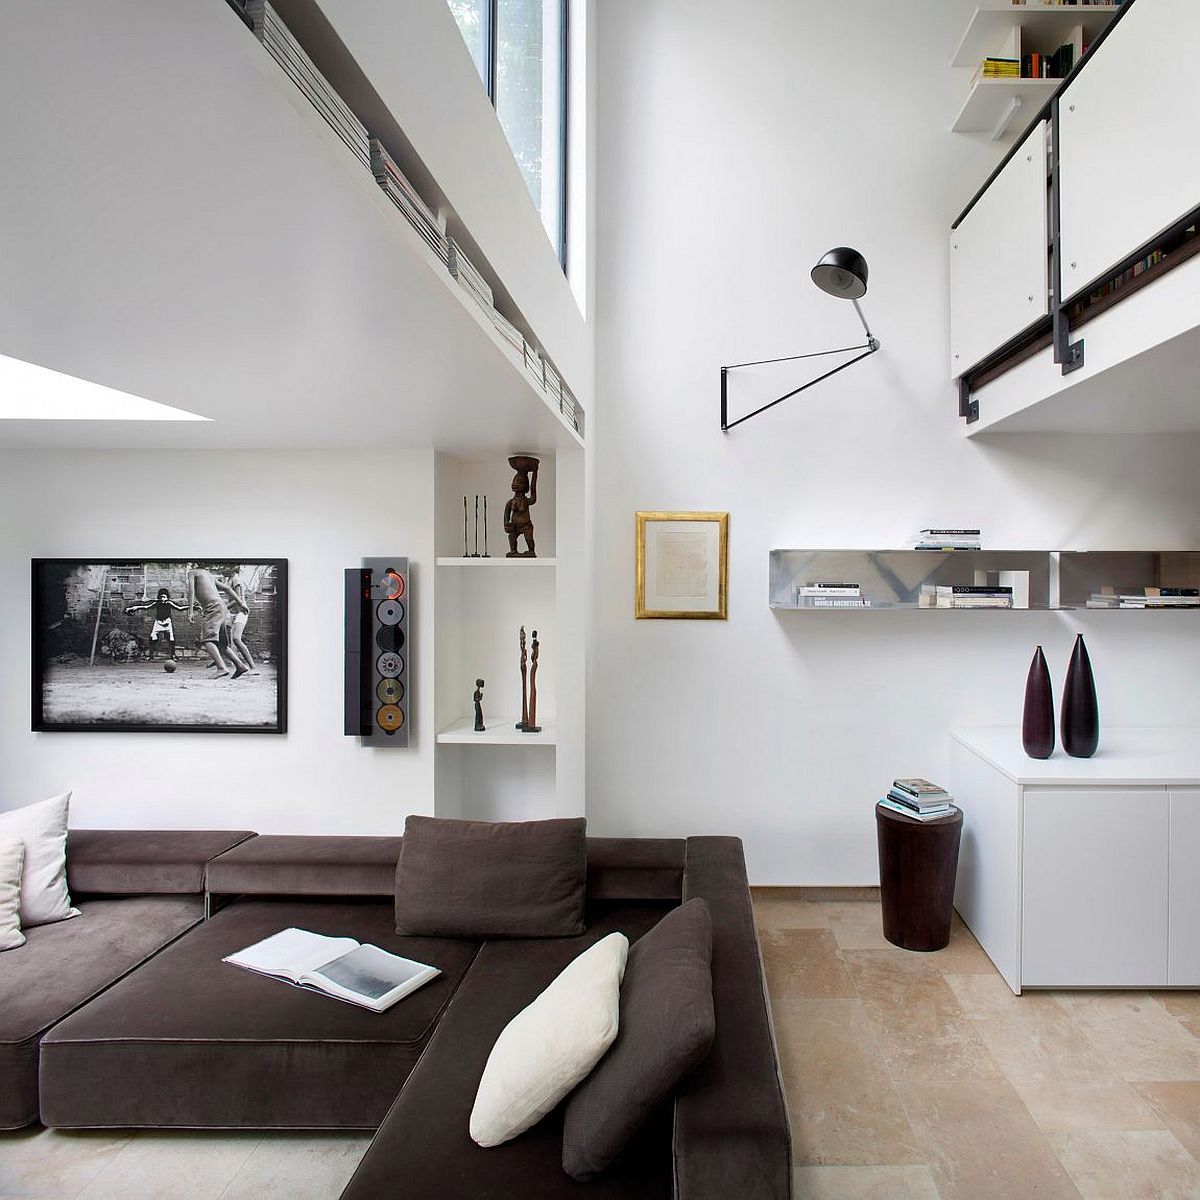 Glass windows and improvised ceiling design give the interior an airy appeal